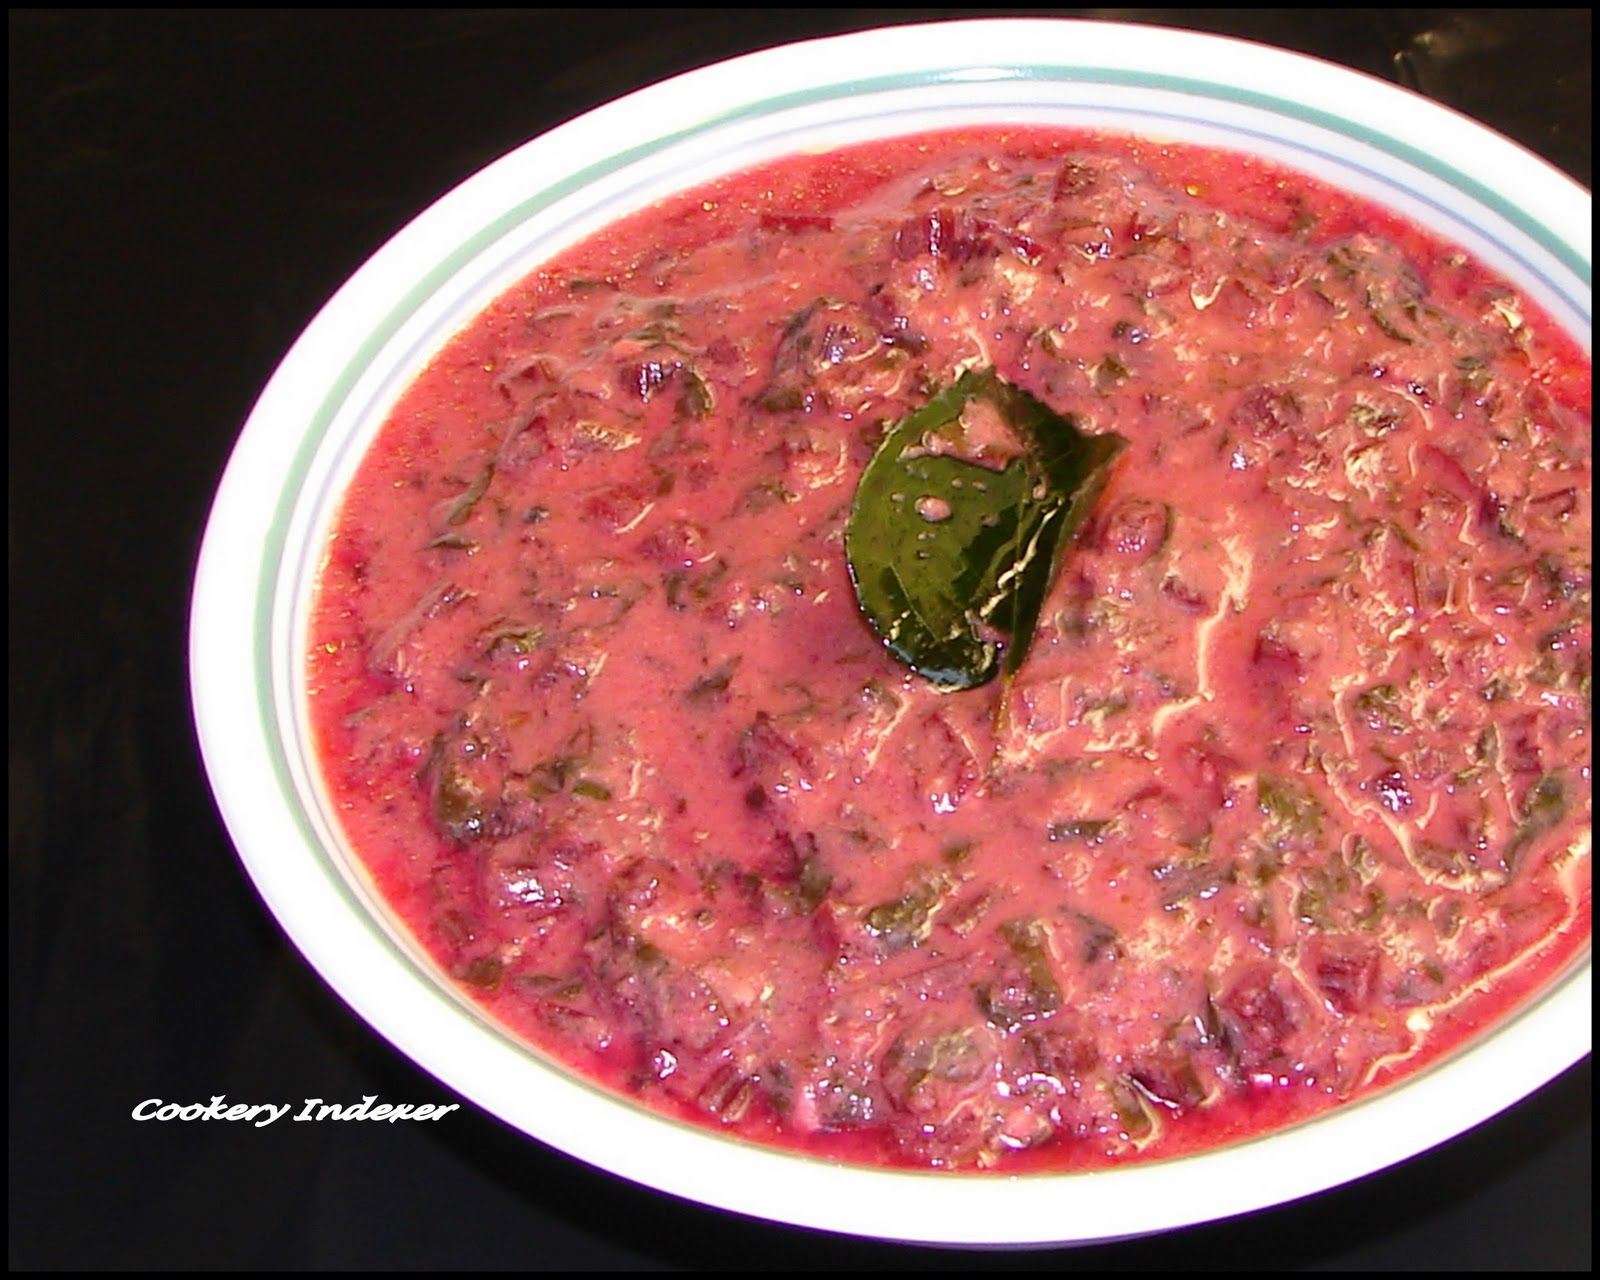 Cuisines Similar To Indian Regional Indian Cuisine Blogroll Beet Greens In Yogurt Gravy